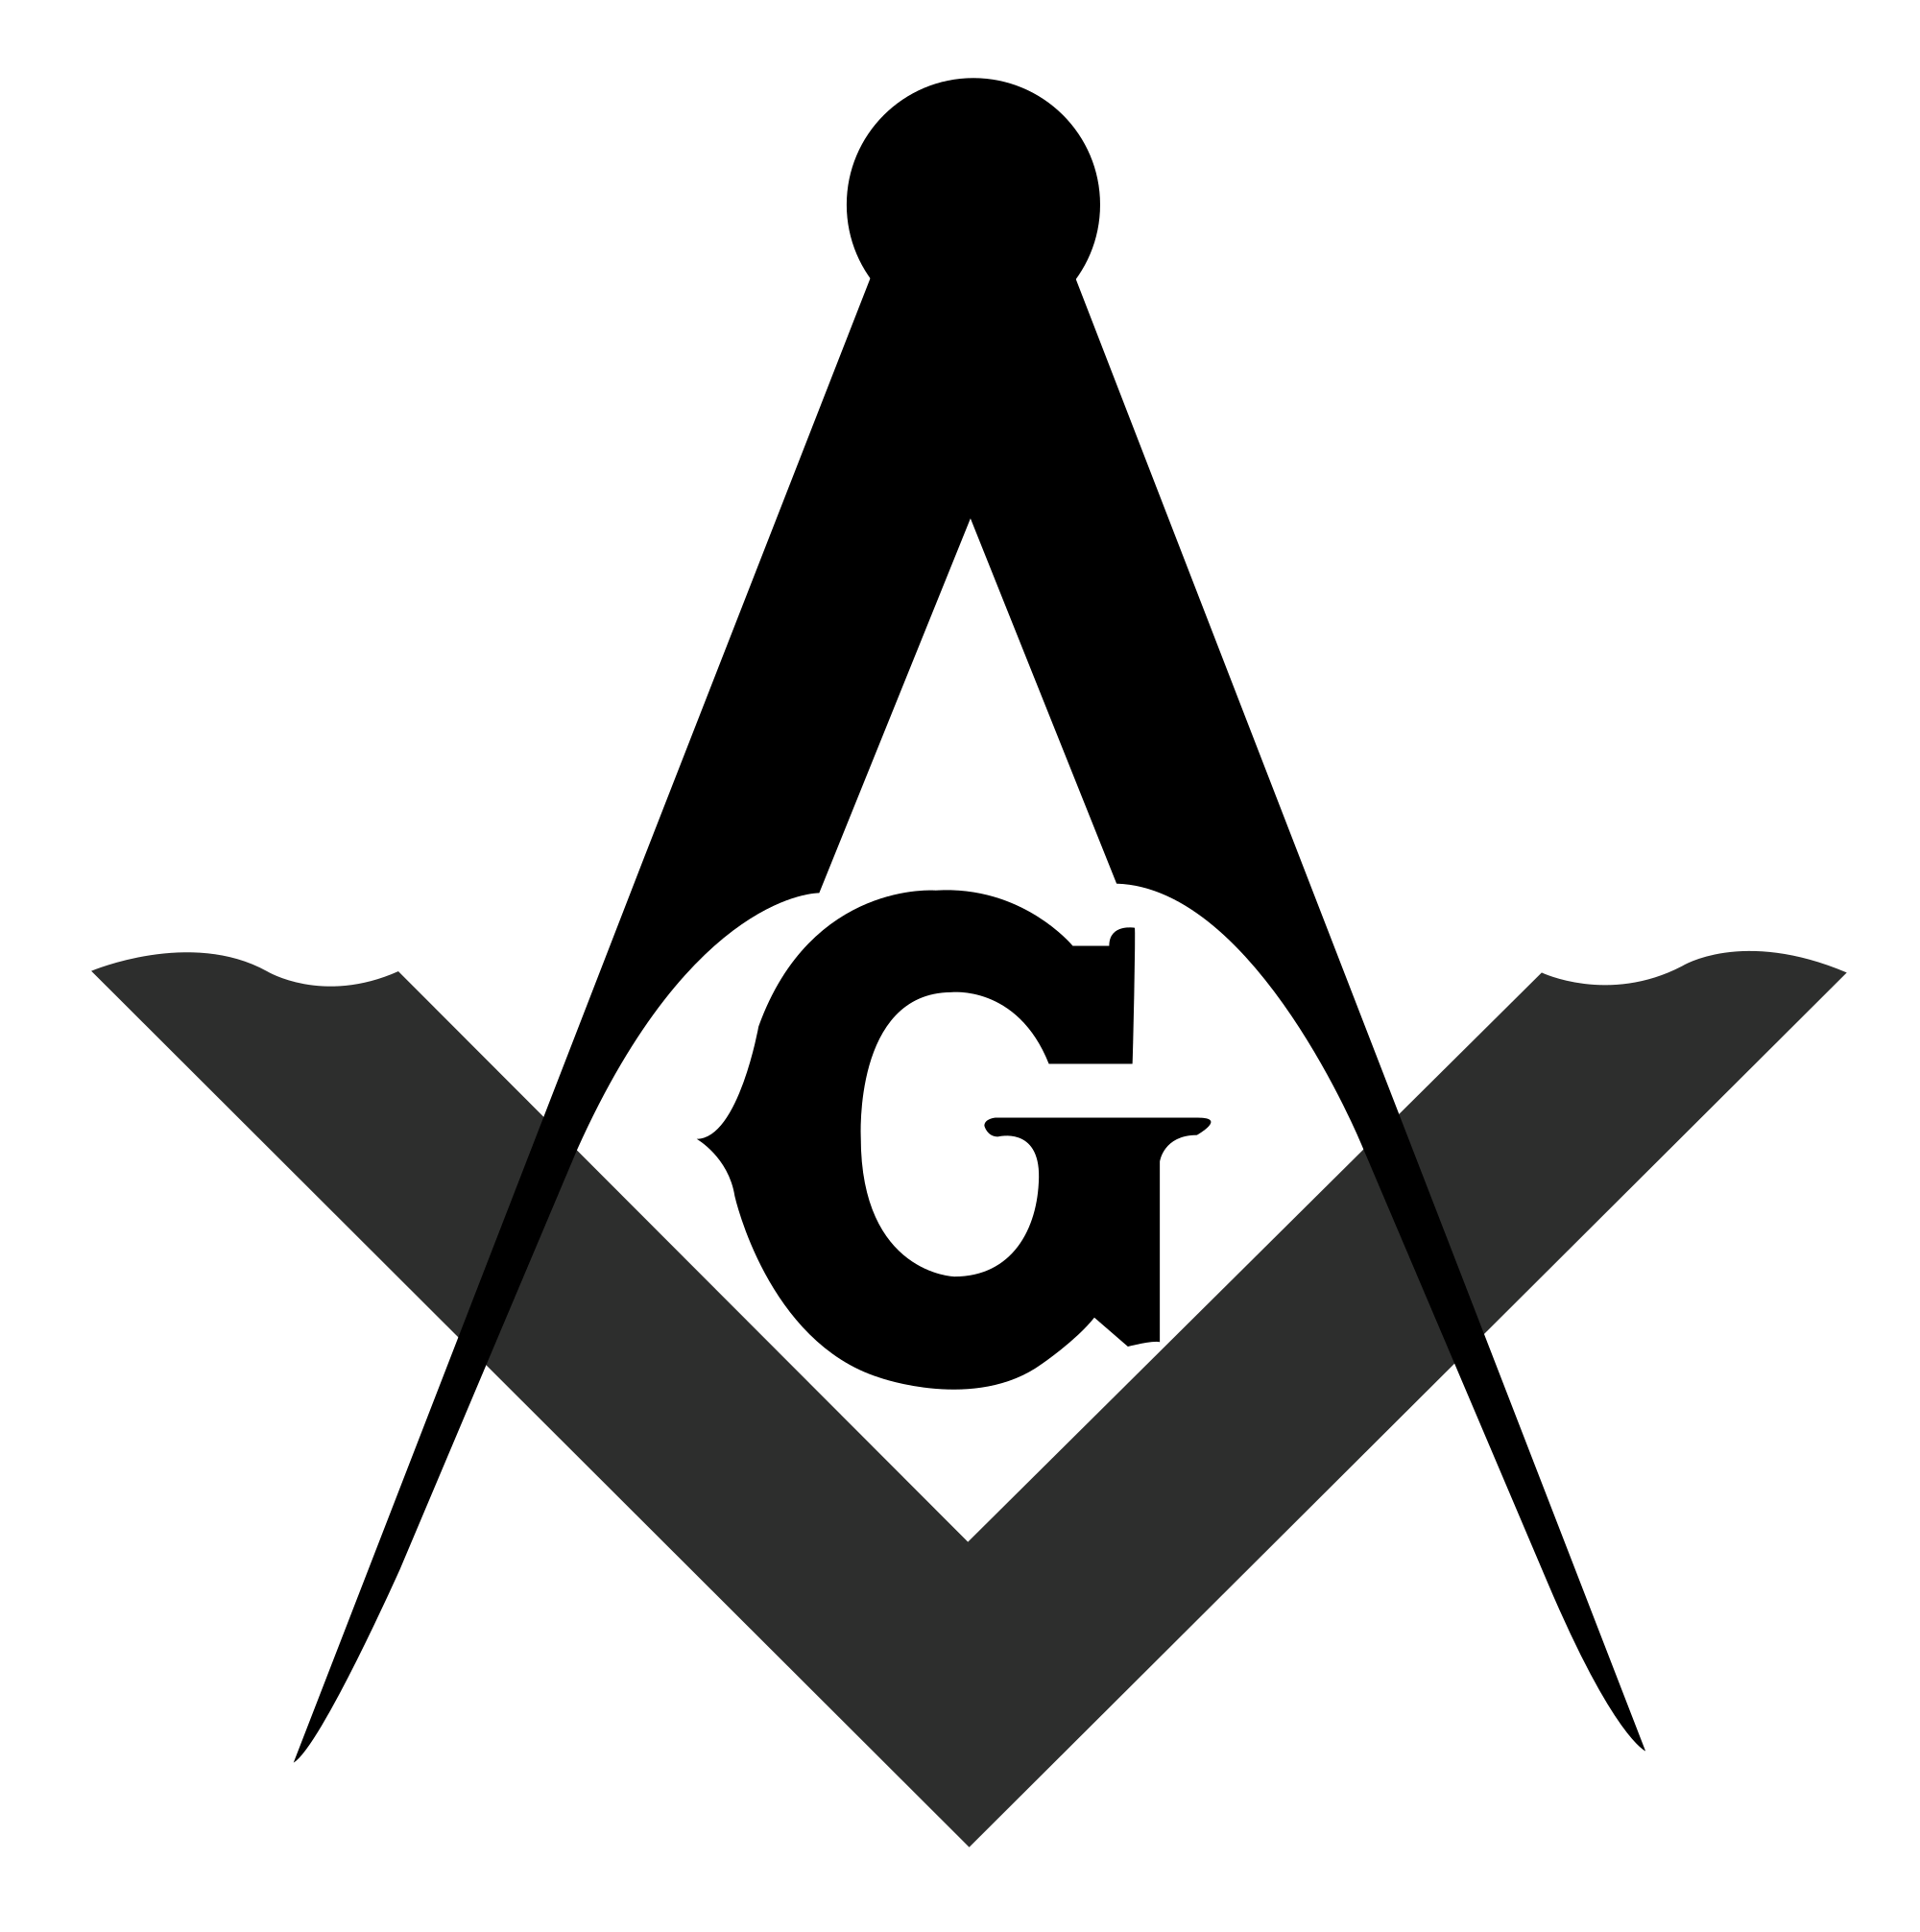 Masonic Symbols Pictures and Meanings - Hand Emblems - Money